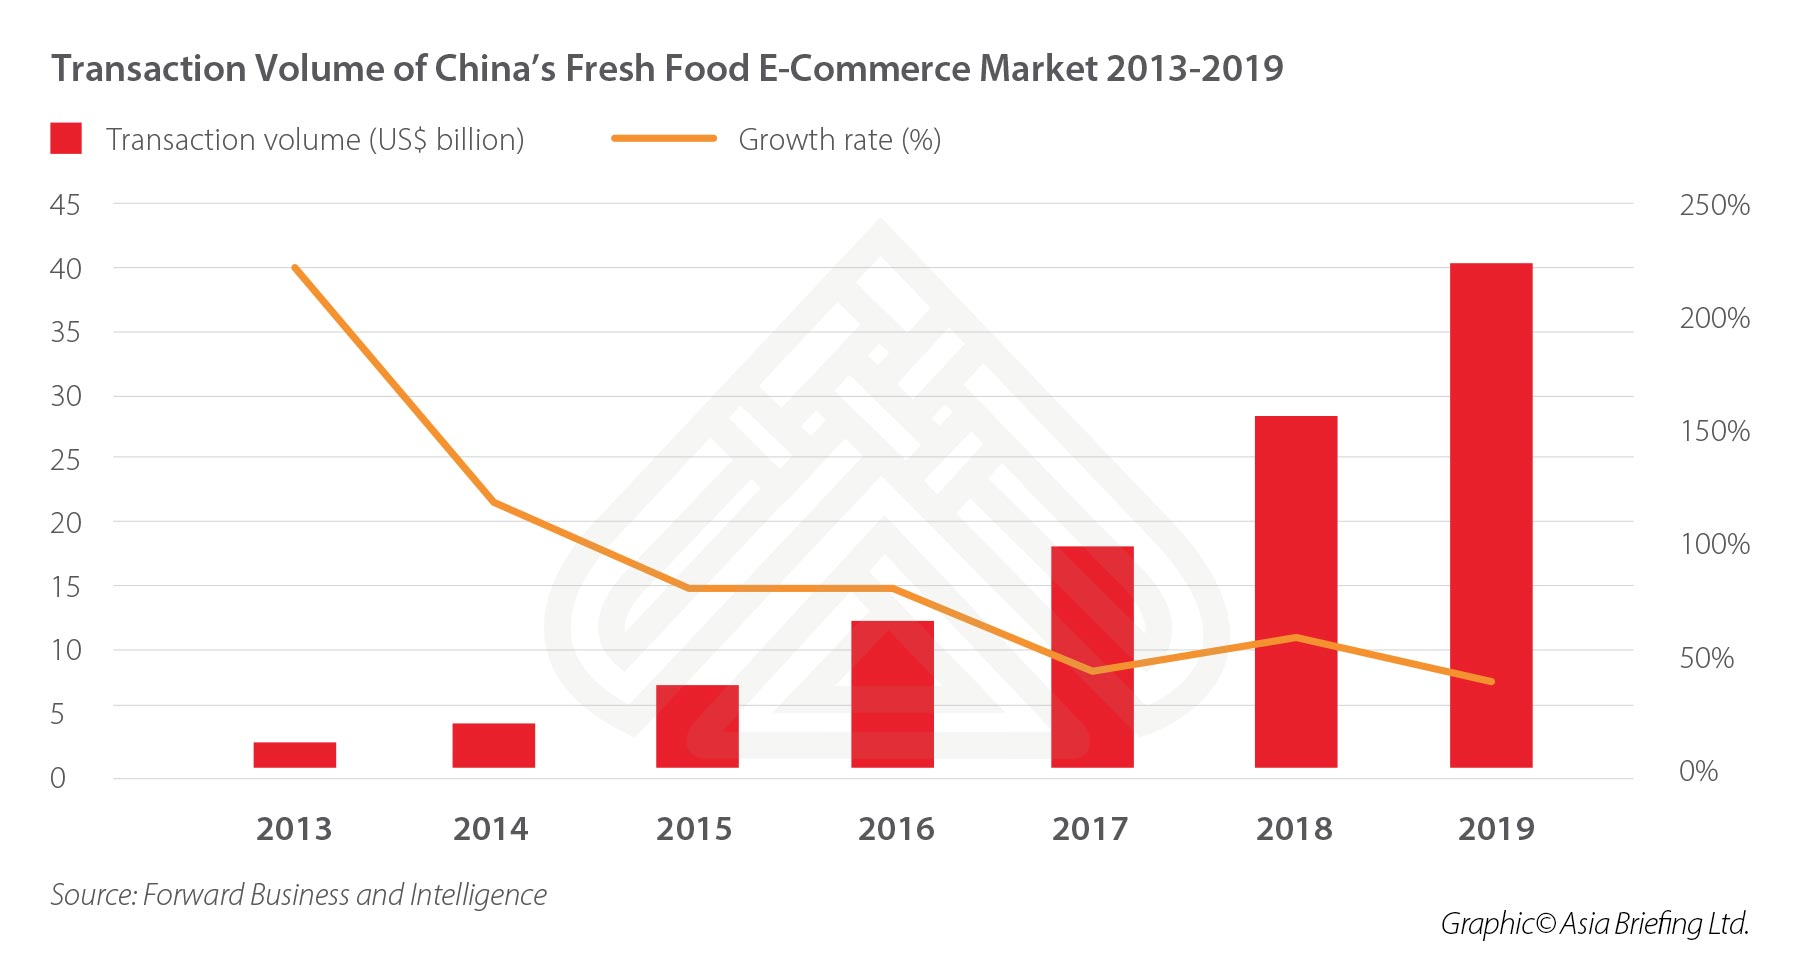 china-fresh-food-ecommerce-transaction-volume